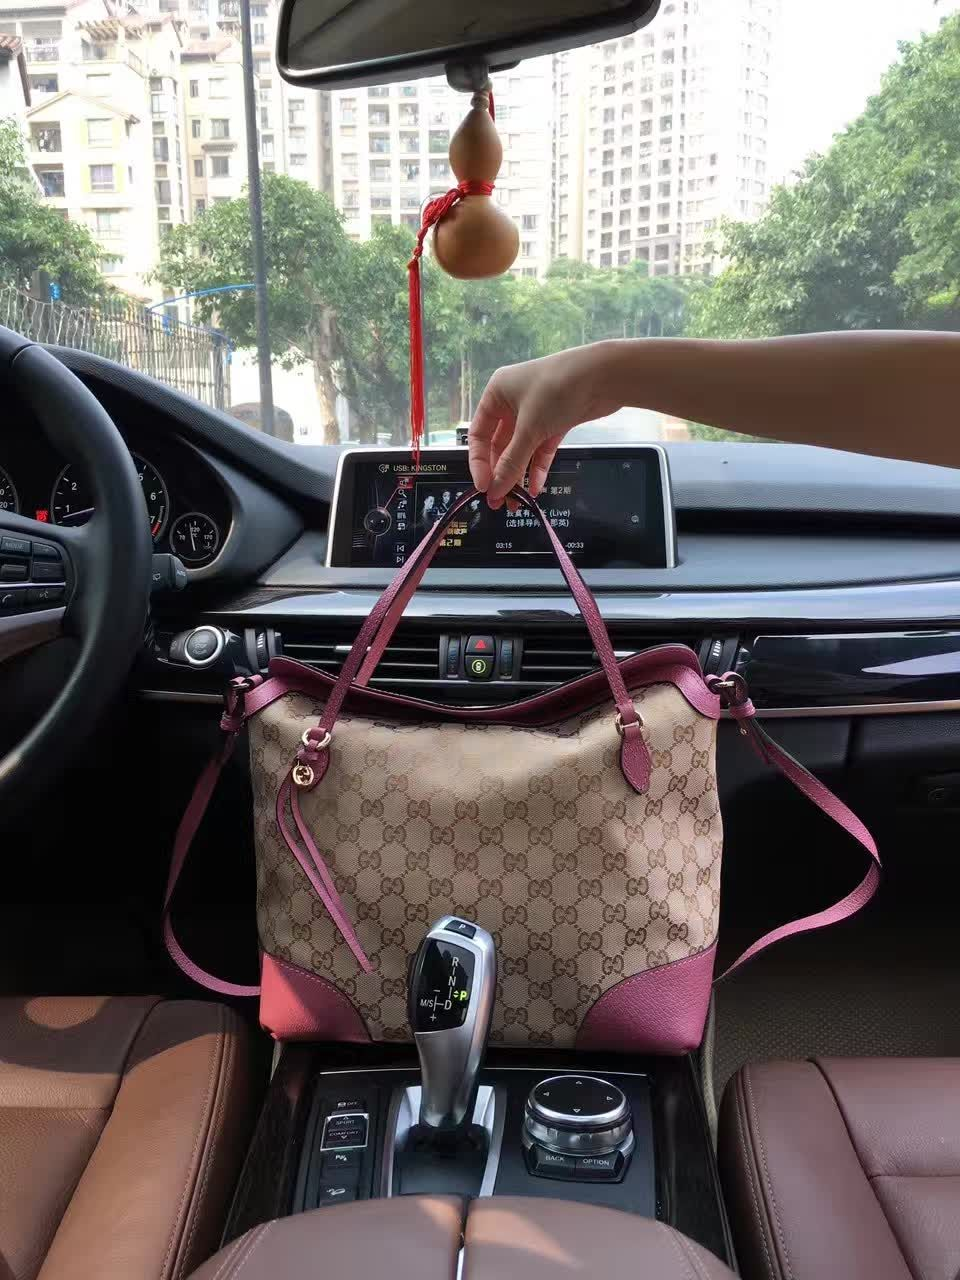 gucci Bag, ID : 62429(FORSALE:a@yybags.com), gucci womens purses, gucci rucksack backpack, gucci on sale, gucci stylish backpacks, gucci shoes online shopping, gucci designer, gucci shopping, gucci store dallas tx, gucci usa site, gucci online sale 2016, gucci fashion shoes, cheap gucci handbags, gucci hands bags, gucci designer leather handbags #gucciBag #gucci #gucci #sale #online